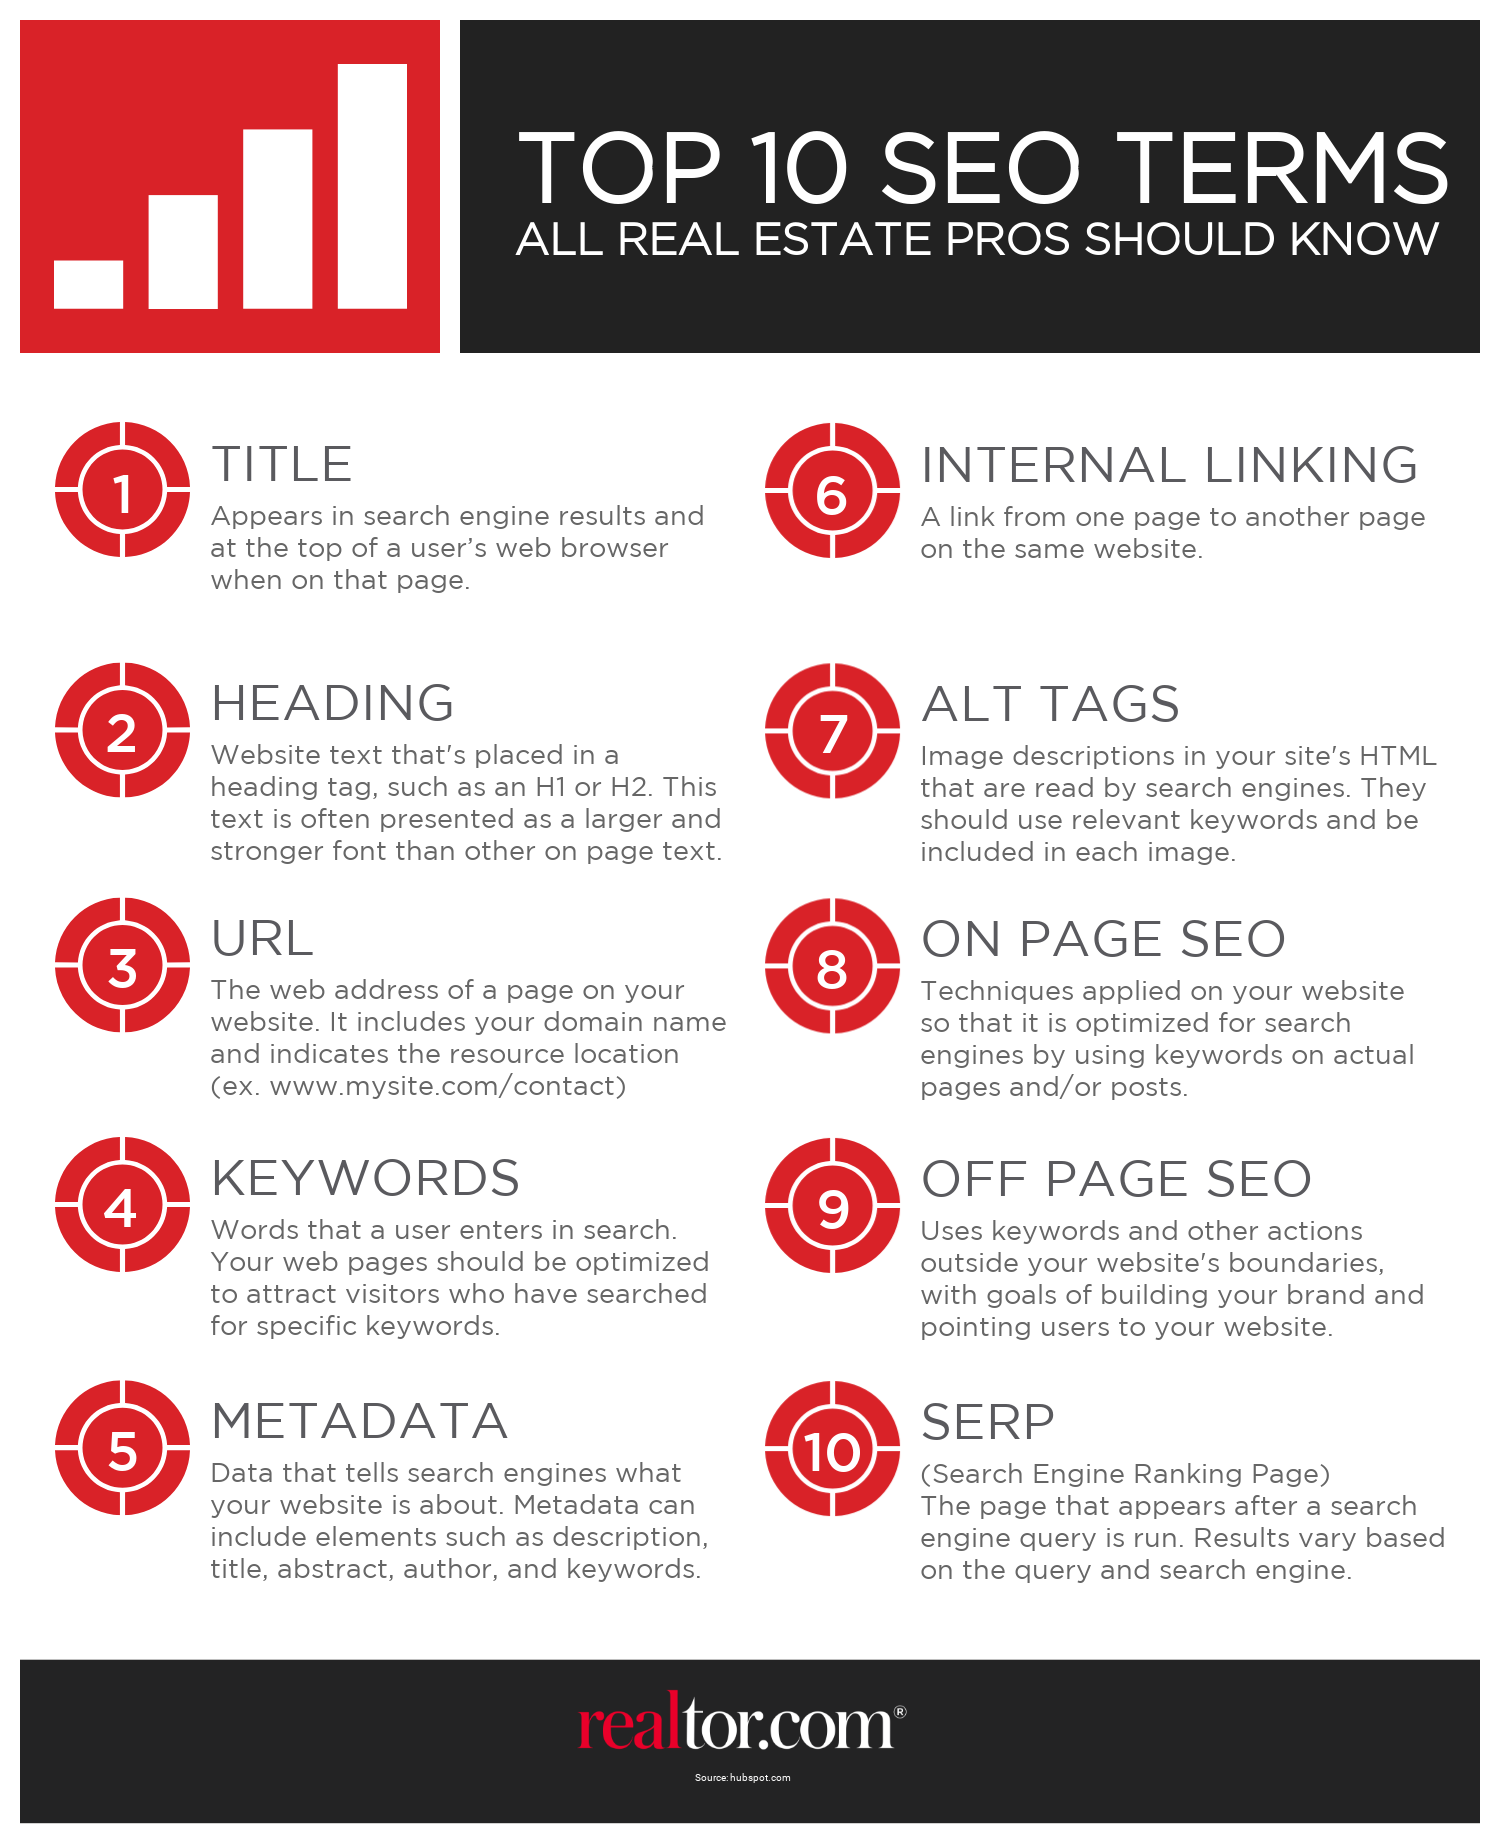 Top 10 SEO Terms for Real Estate Pros